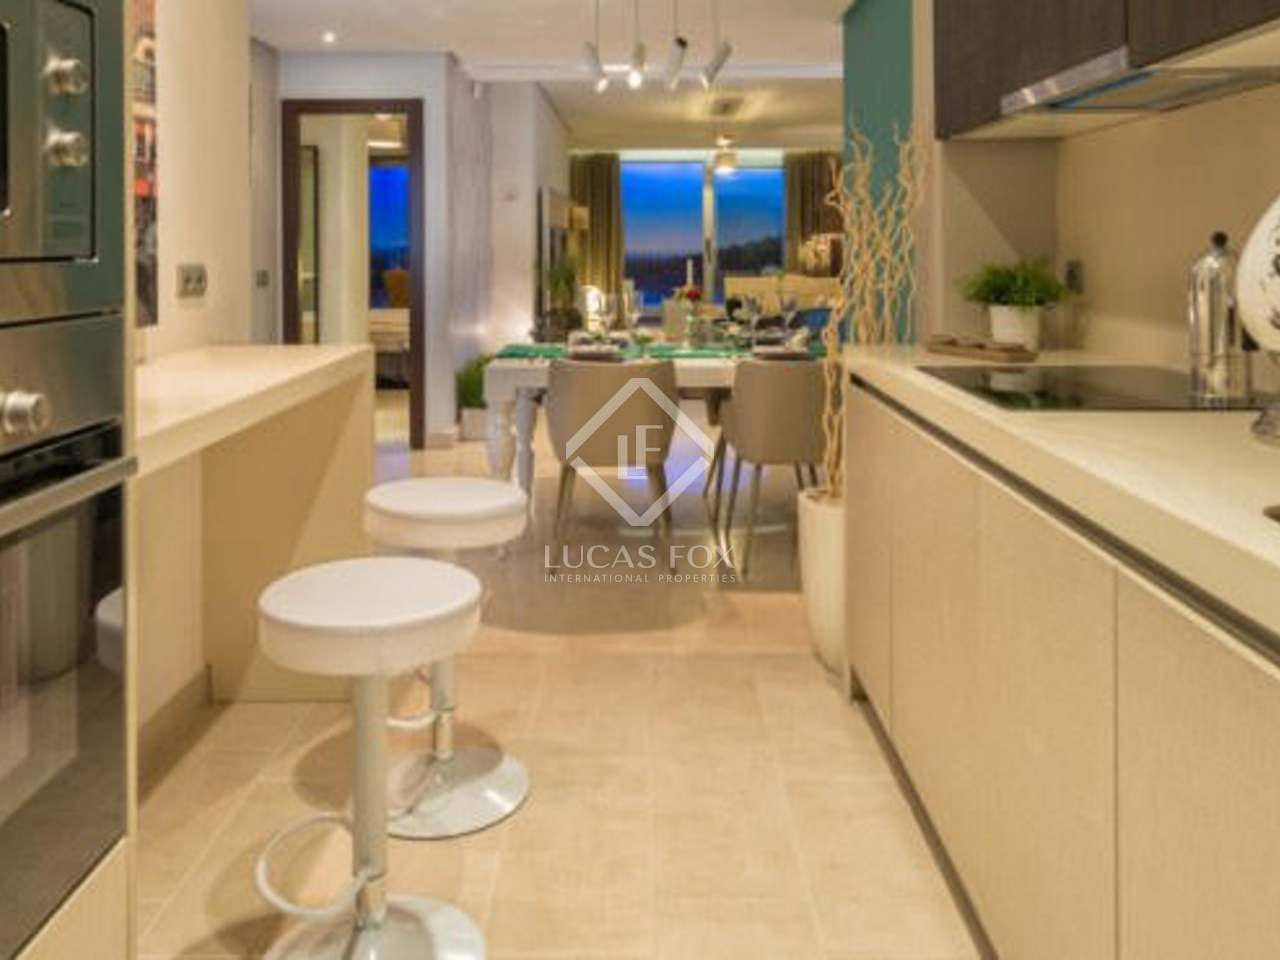 Spacious apartments 3 bedroom apartment for sale in marbella for 24 unit apartment building for sale